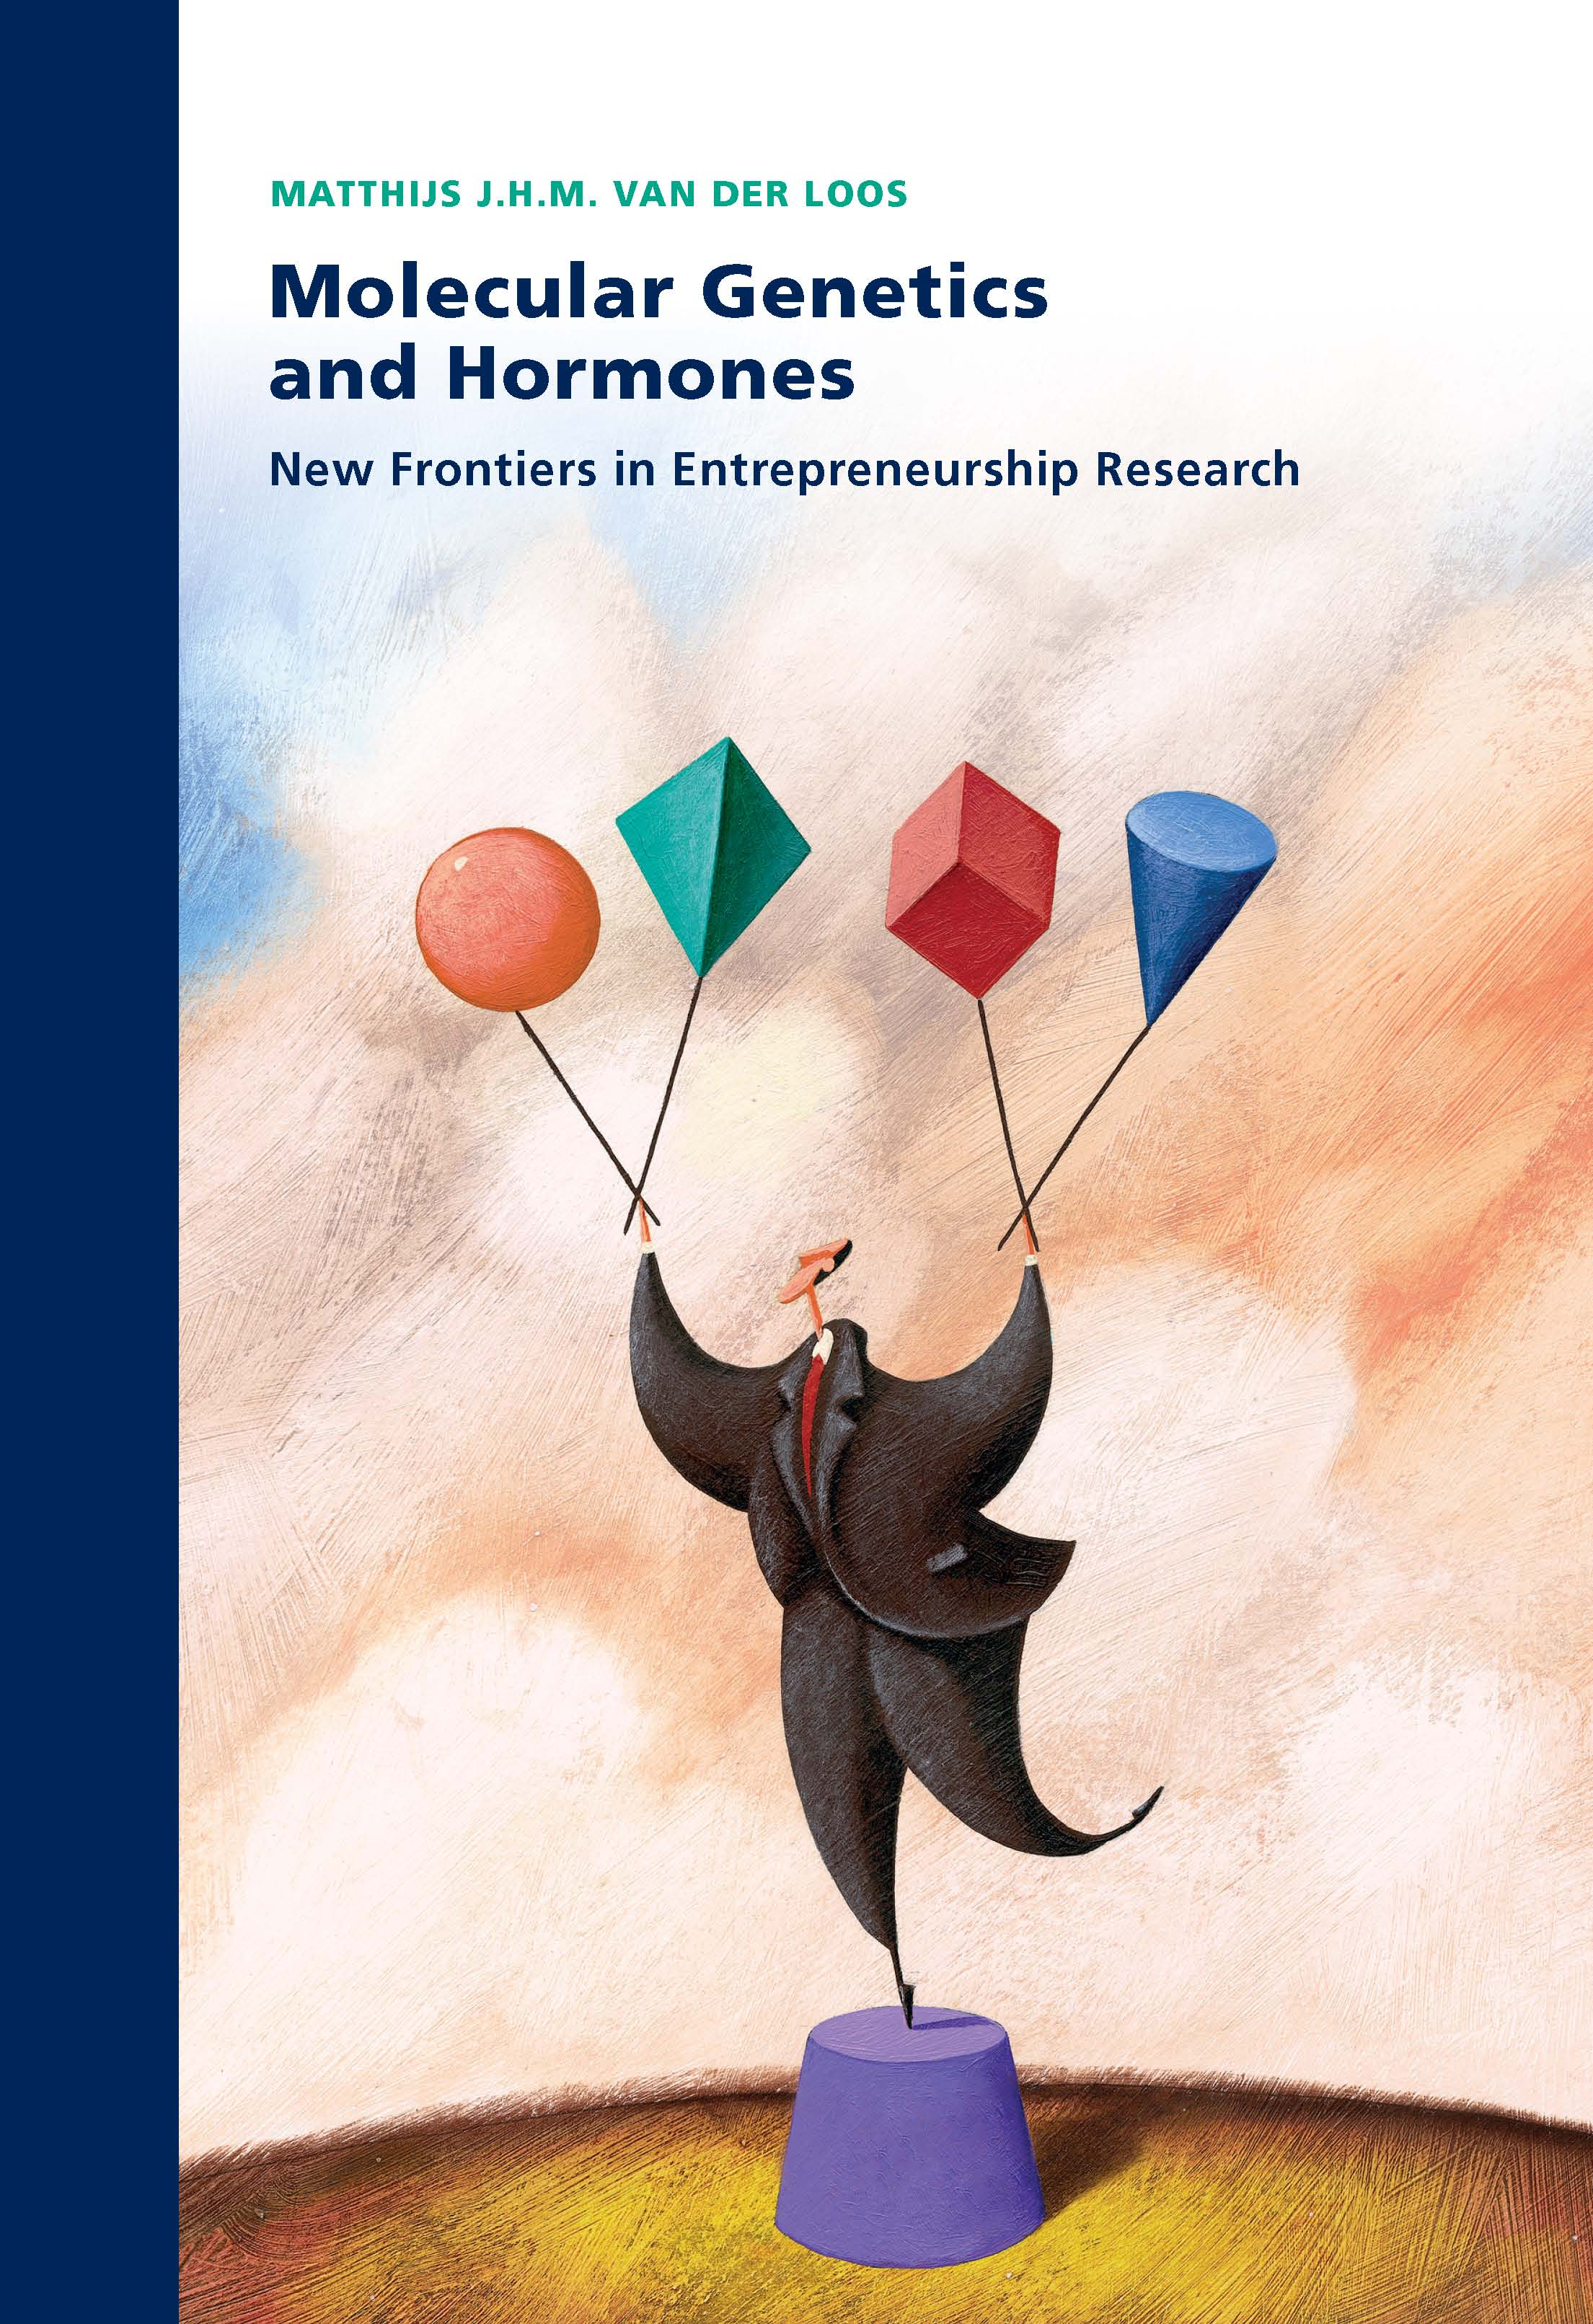 Molecular Genetics and Hormones: New Frontiers in Entrepreneurship Research